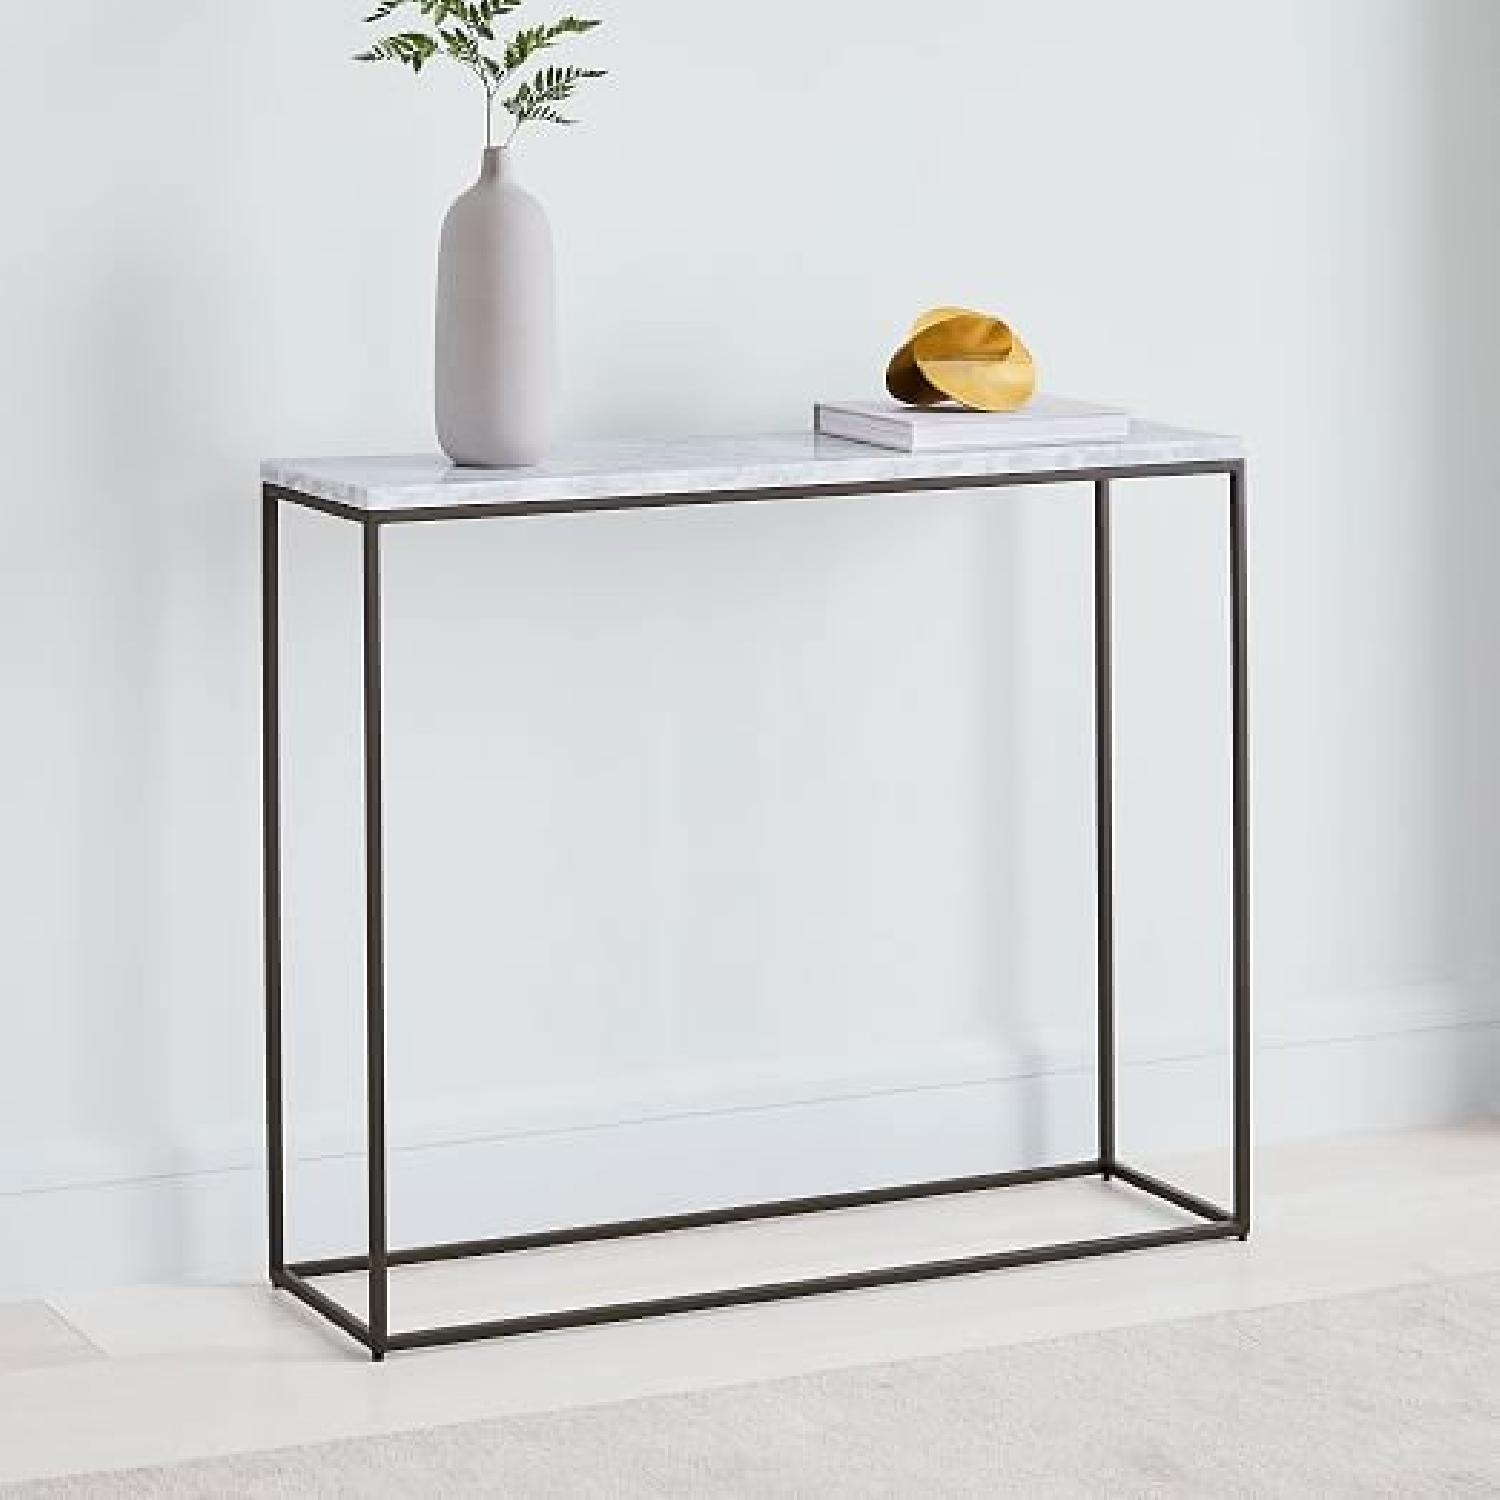 Miraculous West Elm Marble Metal Console Table Aptdeco Caraccident5 Cool Chair Designs And Ideas Caraccident5Info